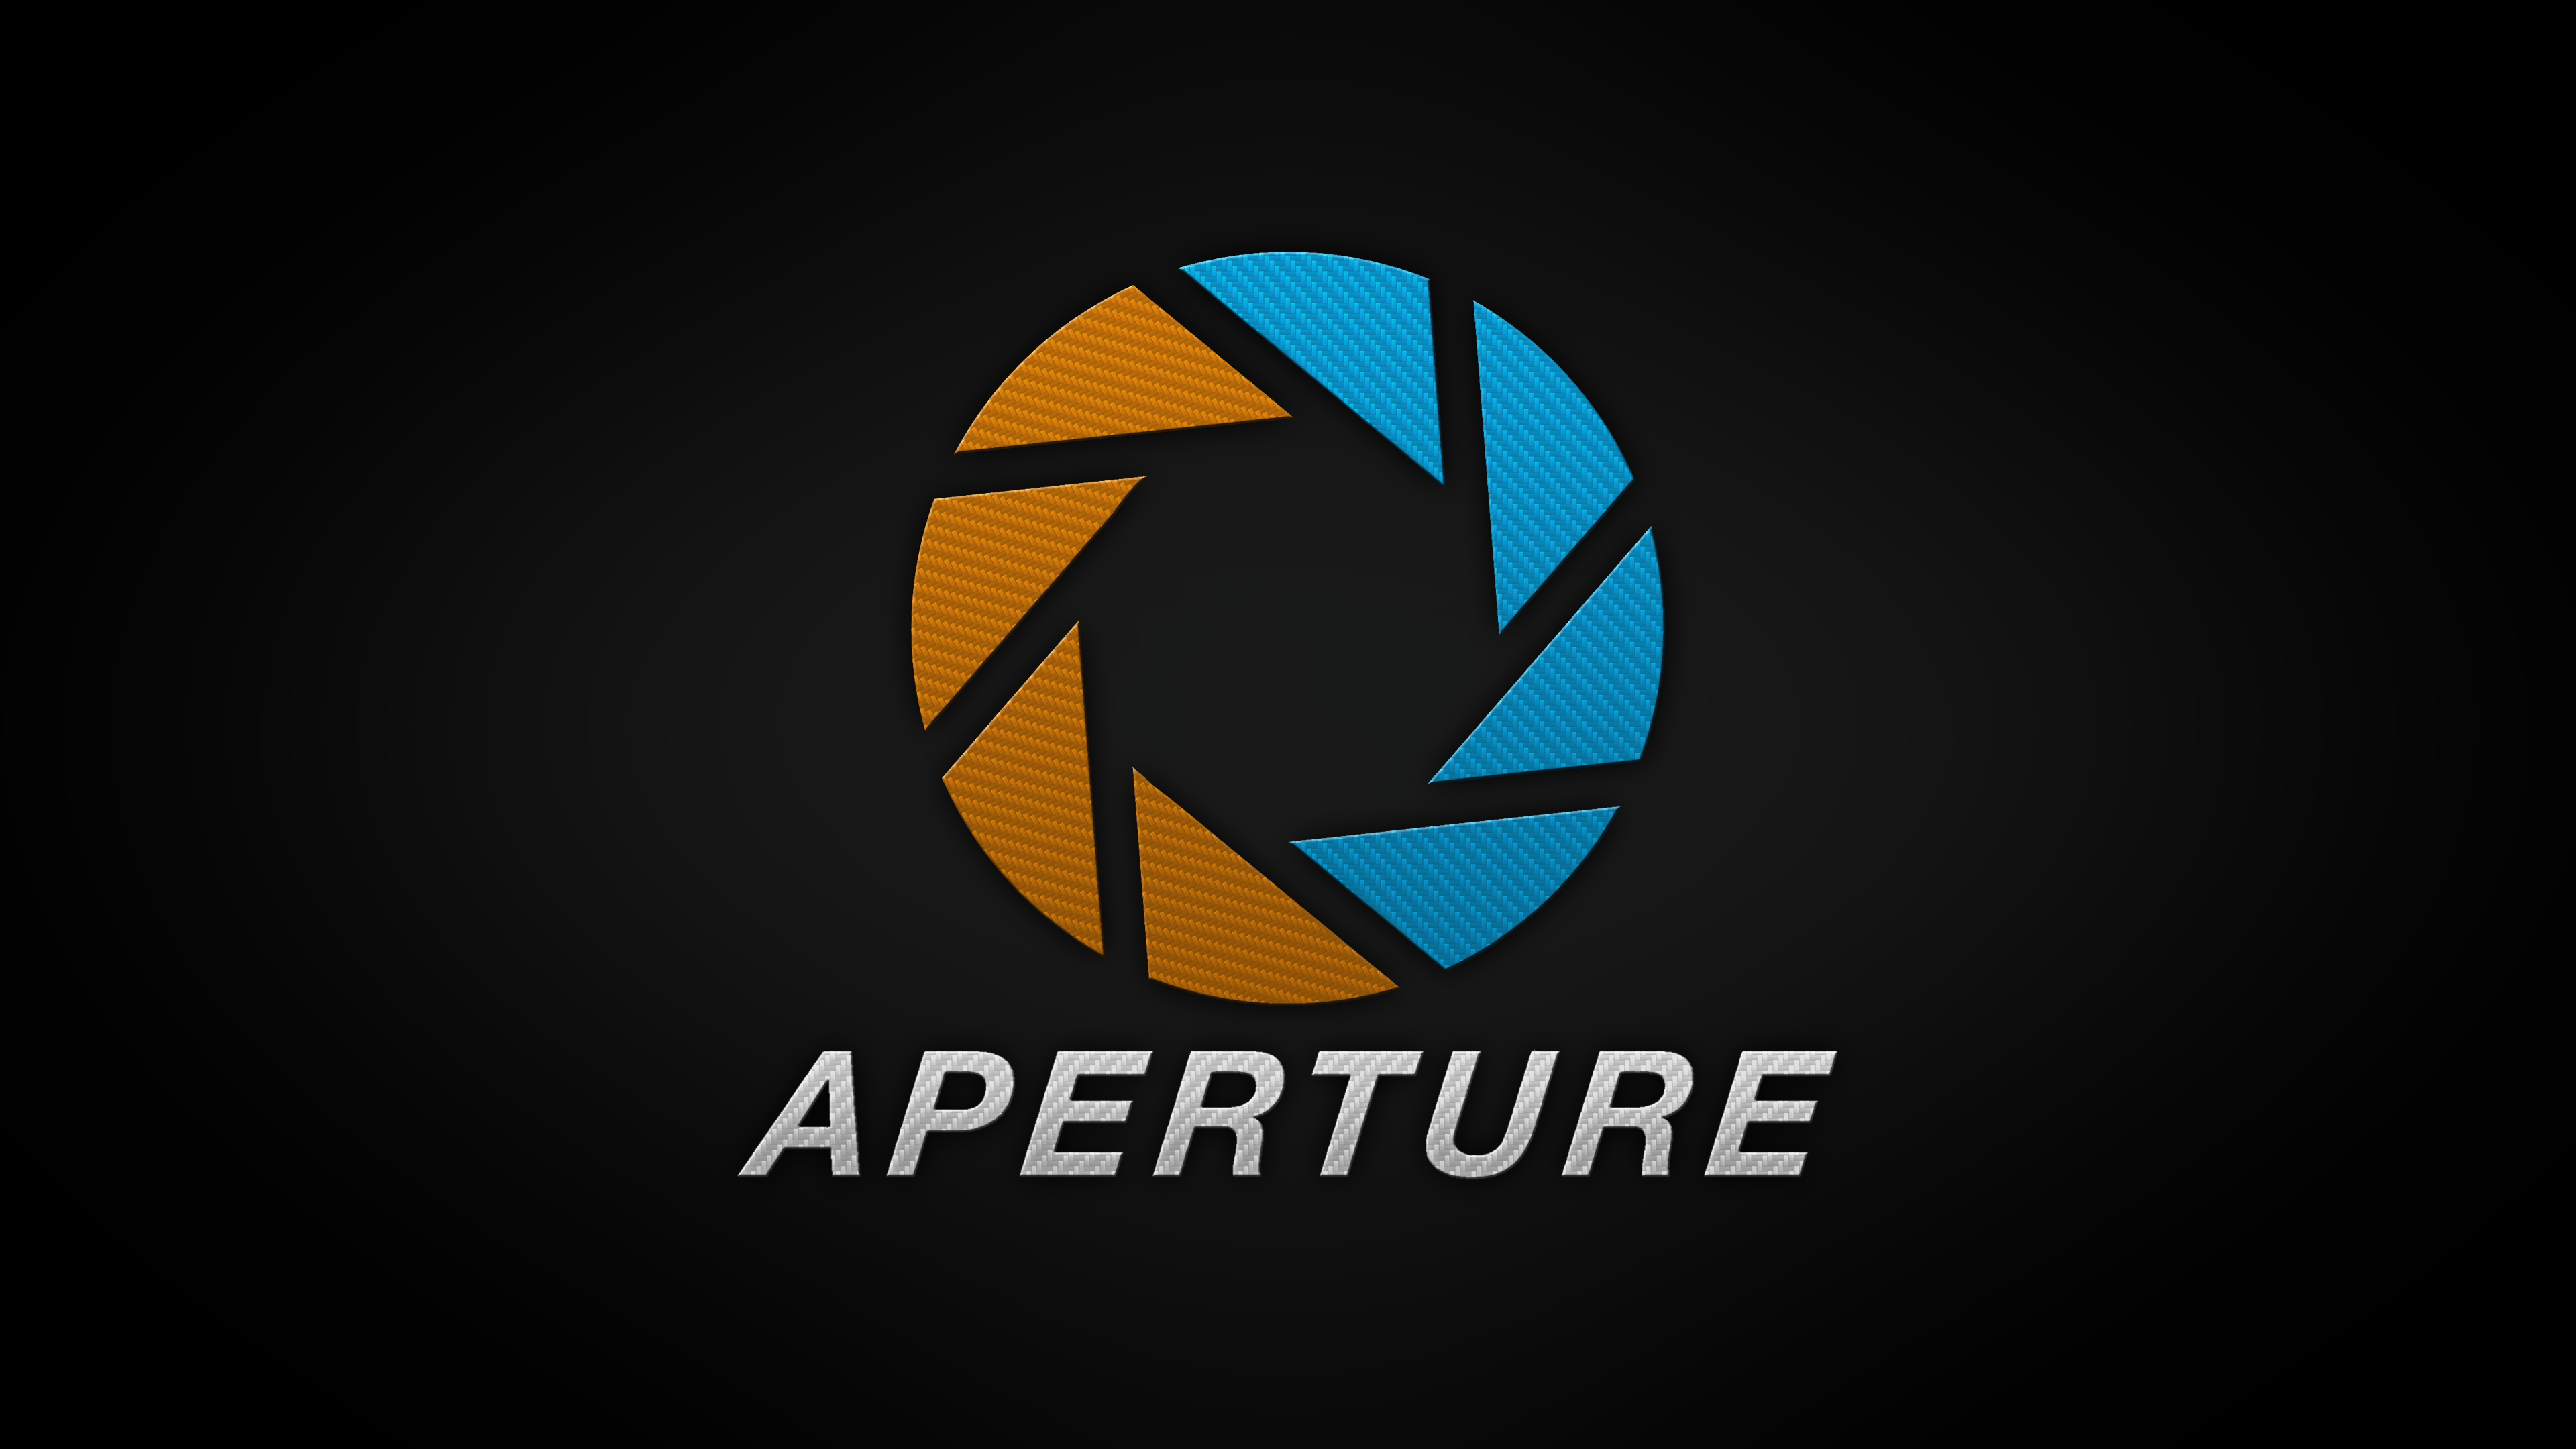 Aperture Brand Logo, HD Logo, 4k Wallpapers, Images ...